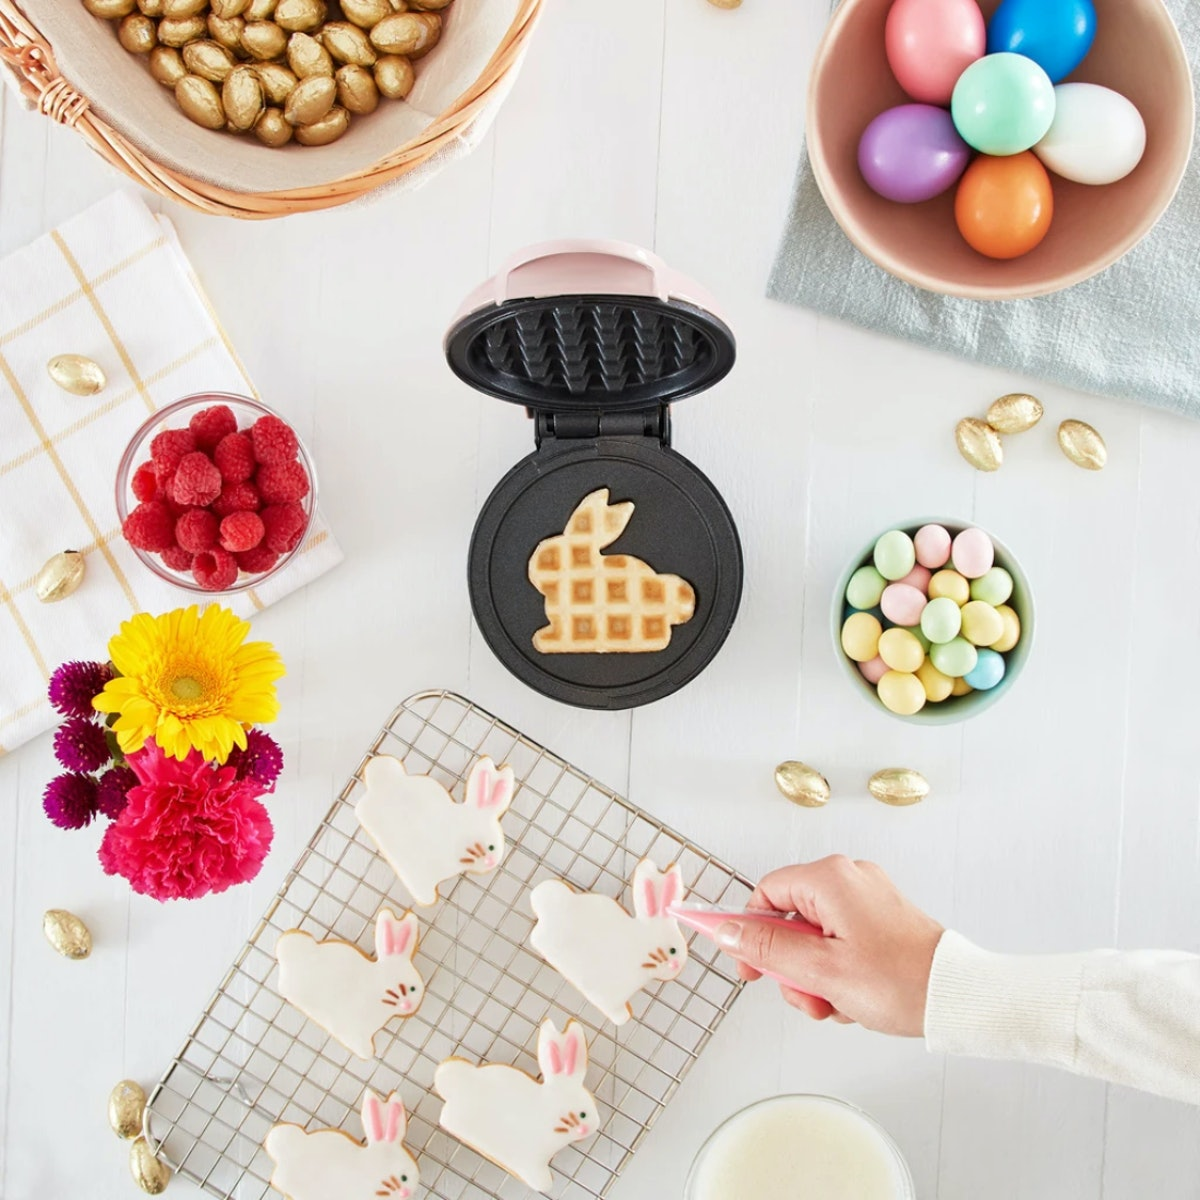 This Bunny Mini Waffle Maker from Dash features cute pastel shades of pink and blue.